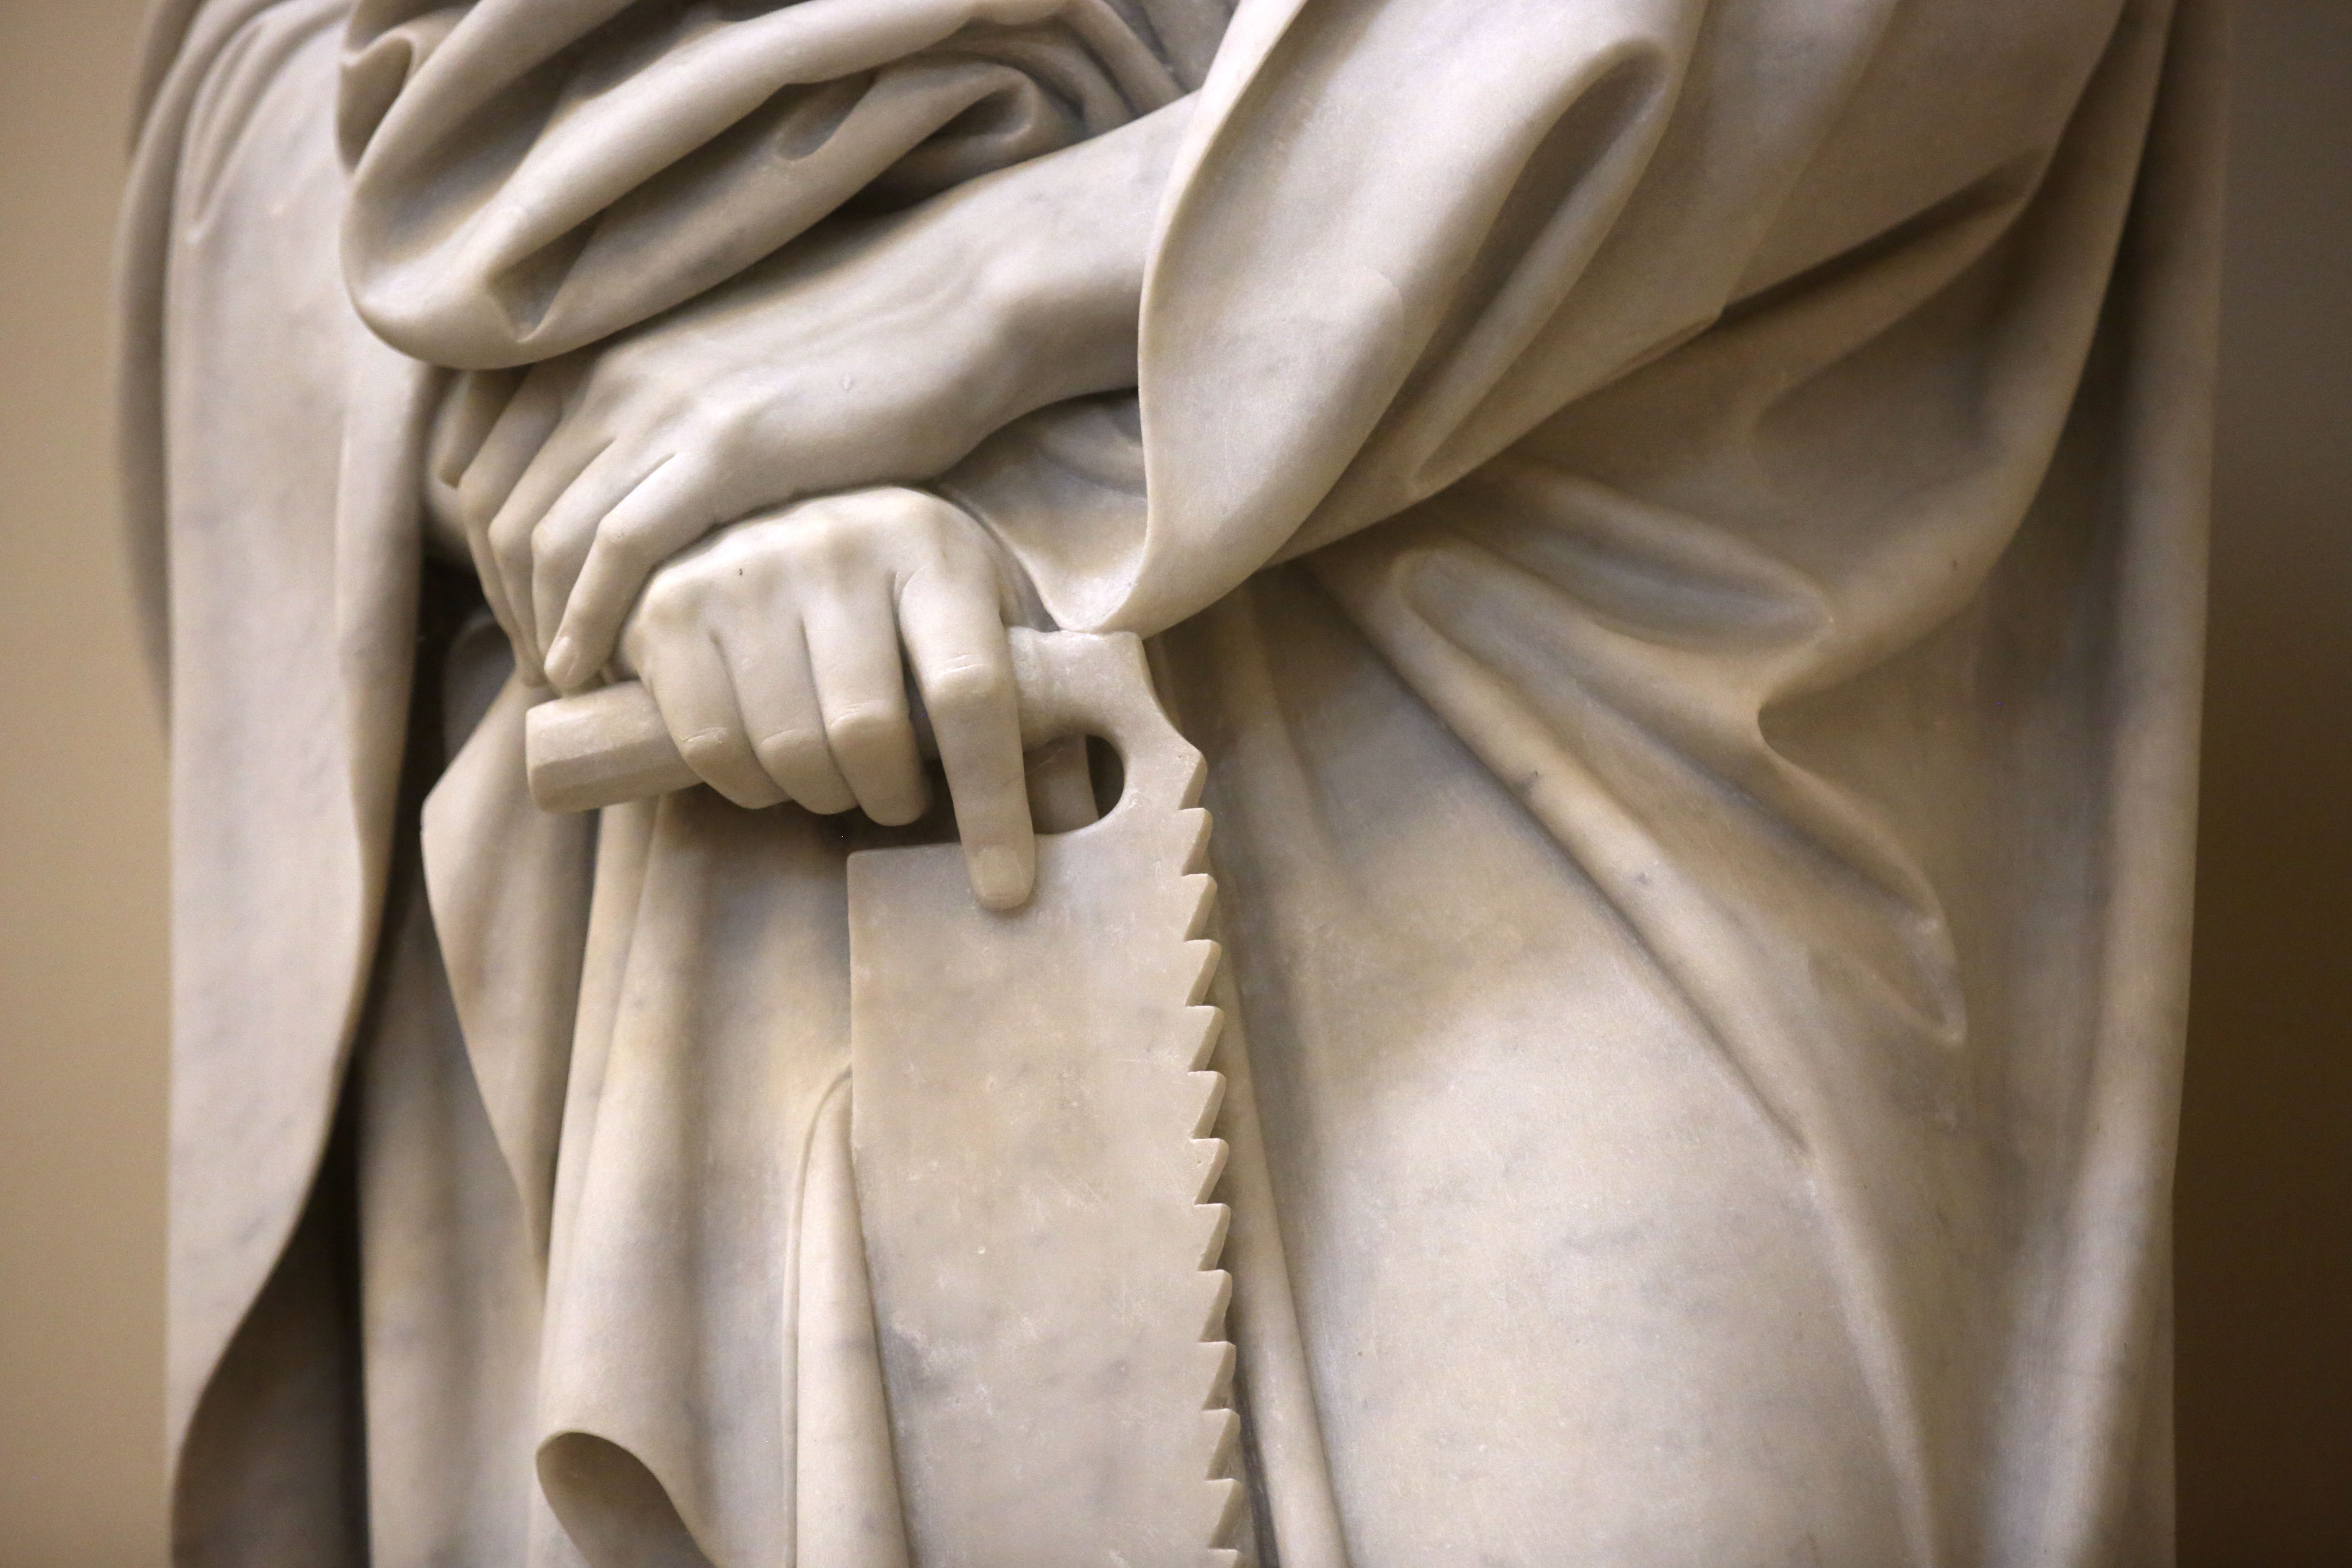 Bertel Thorvaldsen's statue of Simon, one of the 12 apostles, holds a saw at the Church of Our Lady in Copenhagen, Denmark, on Tuesday, Nov. 13, 2018. The 12 apostles statues were carved out of Carrara marble between 1829 and 1848. Replicas of the statues are now on display in the Rome Temple Visitors' Center in Italy.